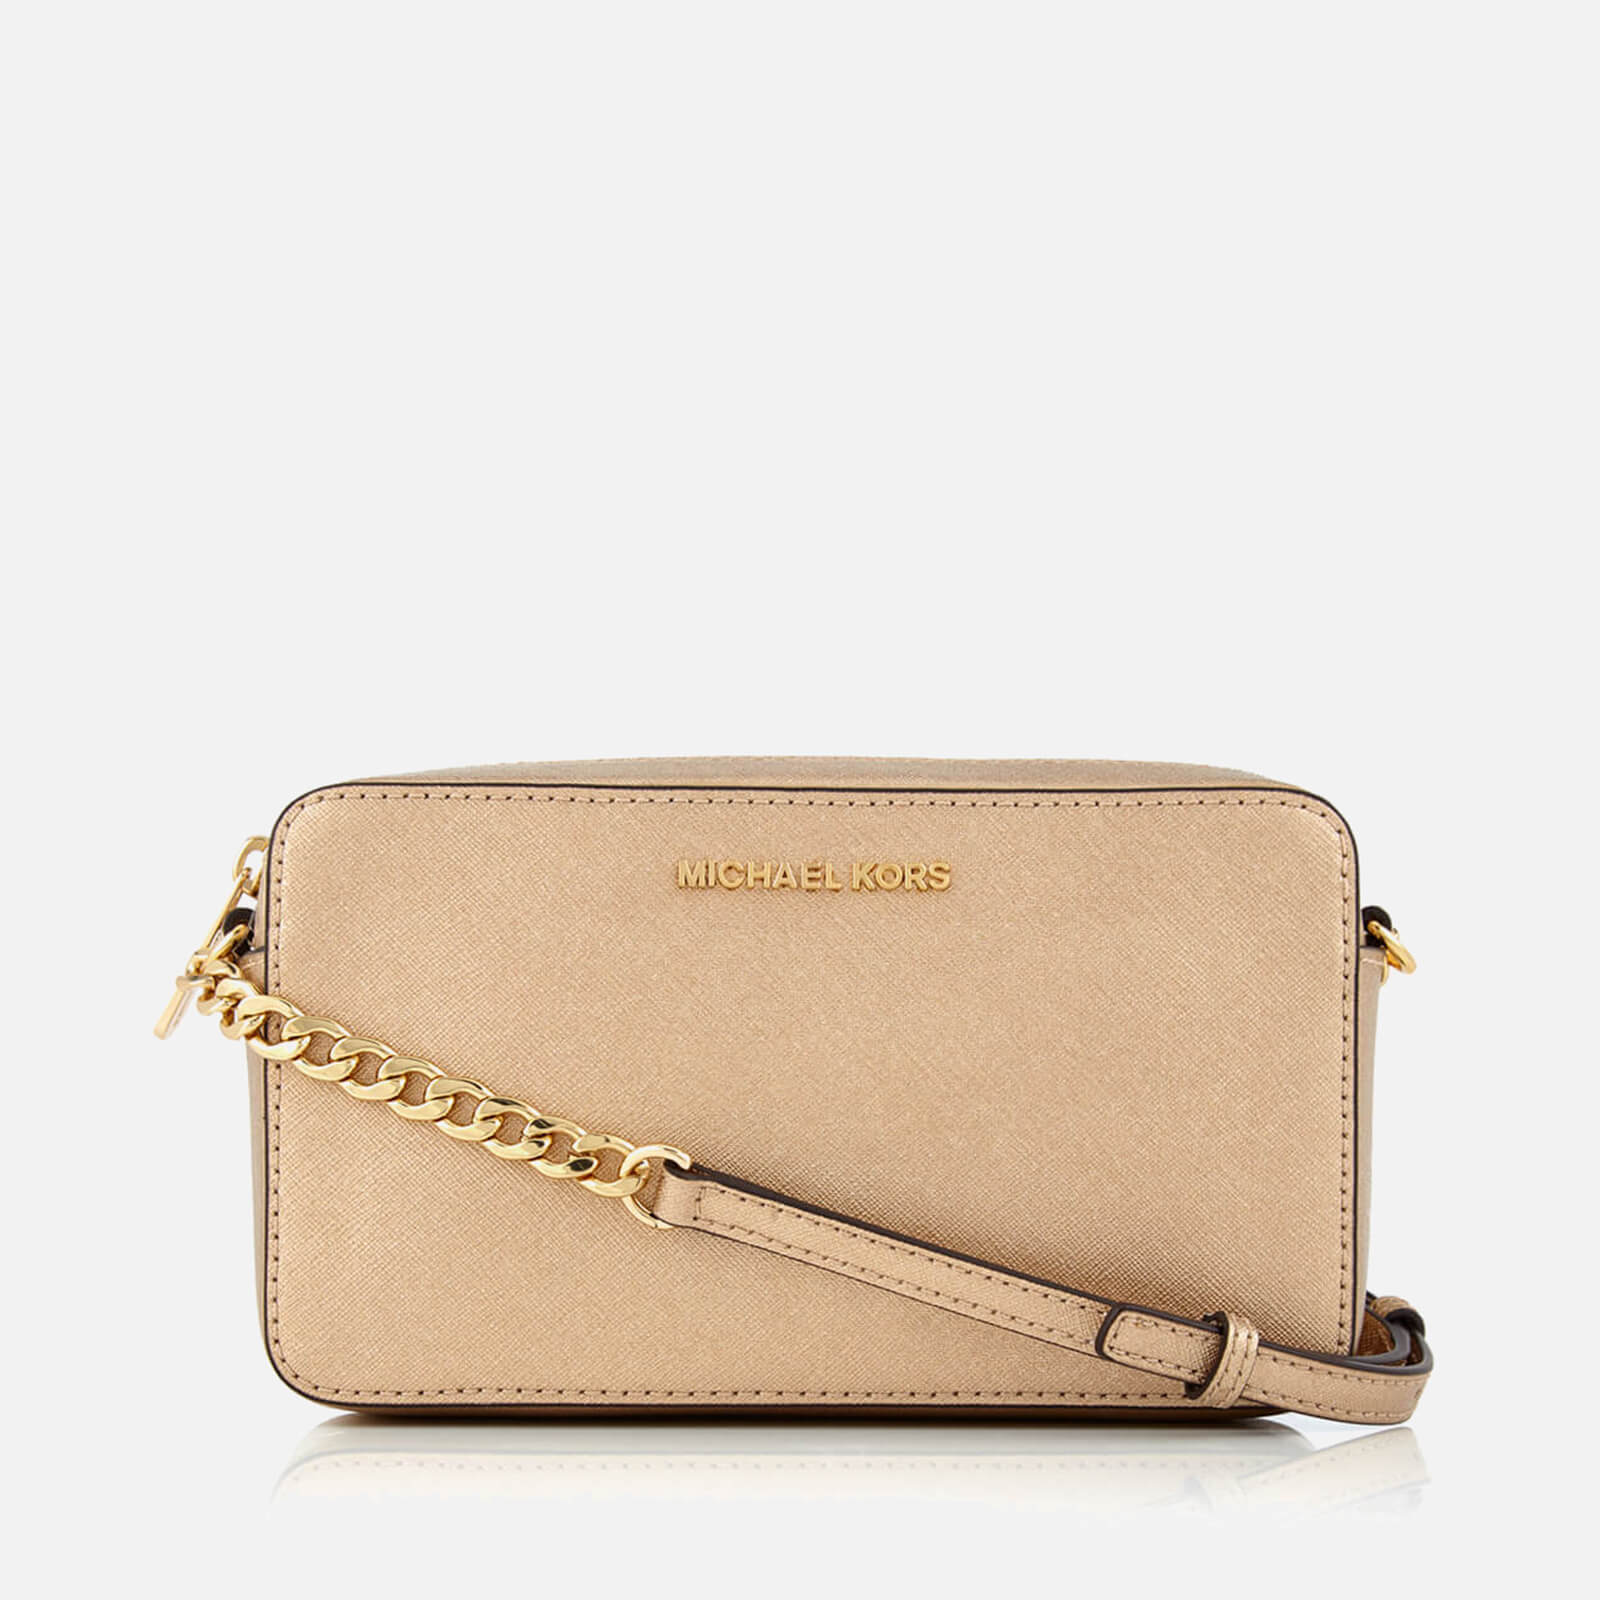 7ea8159f3889 MICHAEL MICHAEL KORS Women's Jet Set Travel Medium East West Cross Body Bag  - Pale Gold Womens Accessories | TheHut.com